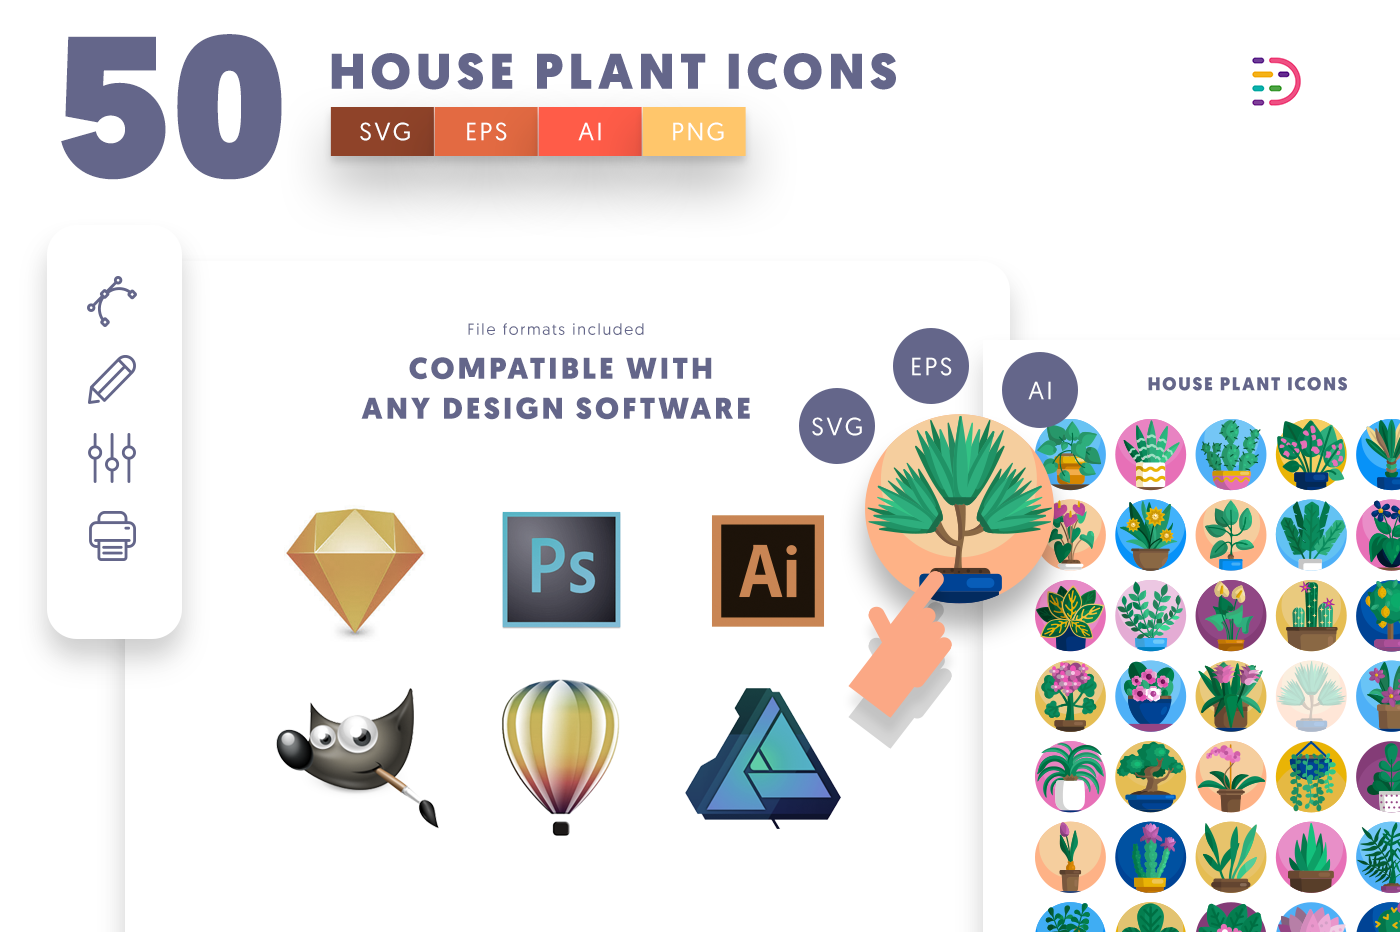 Compatible 50 House Plant Icons pack